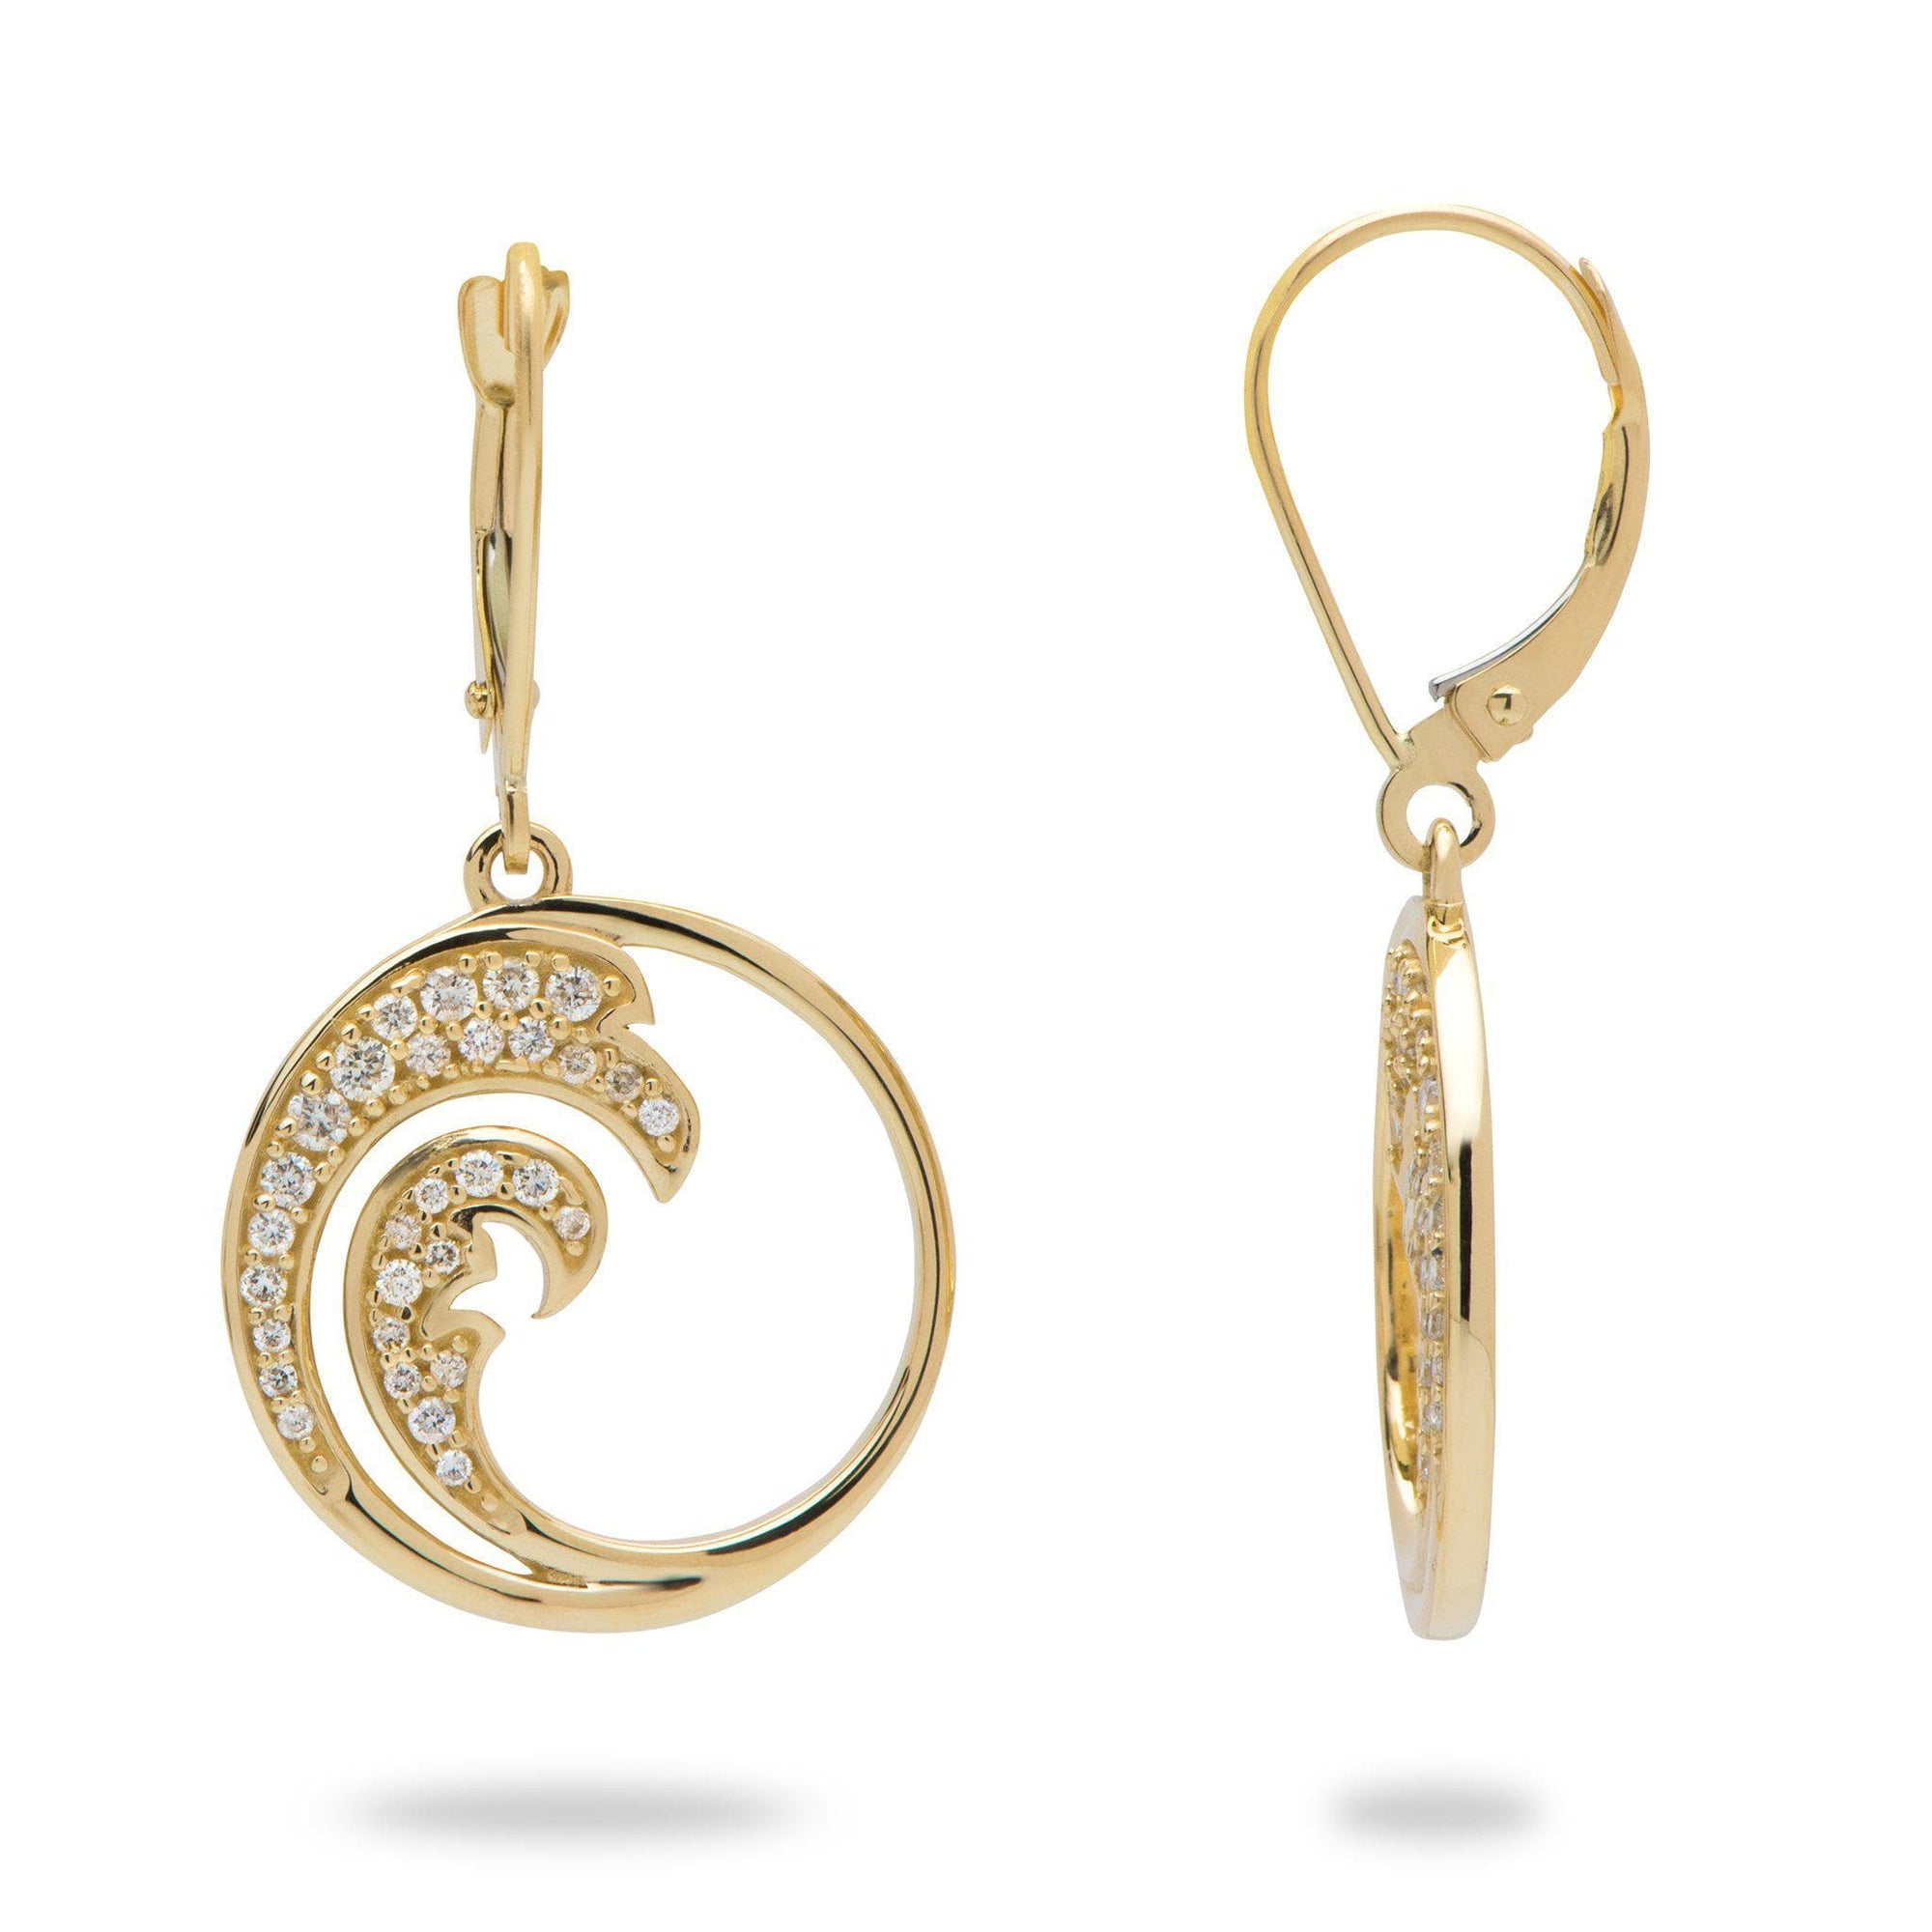 Nalu Earrings in Gold with Diamonds - 34mm-[SKU]